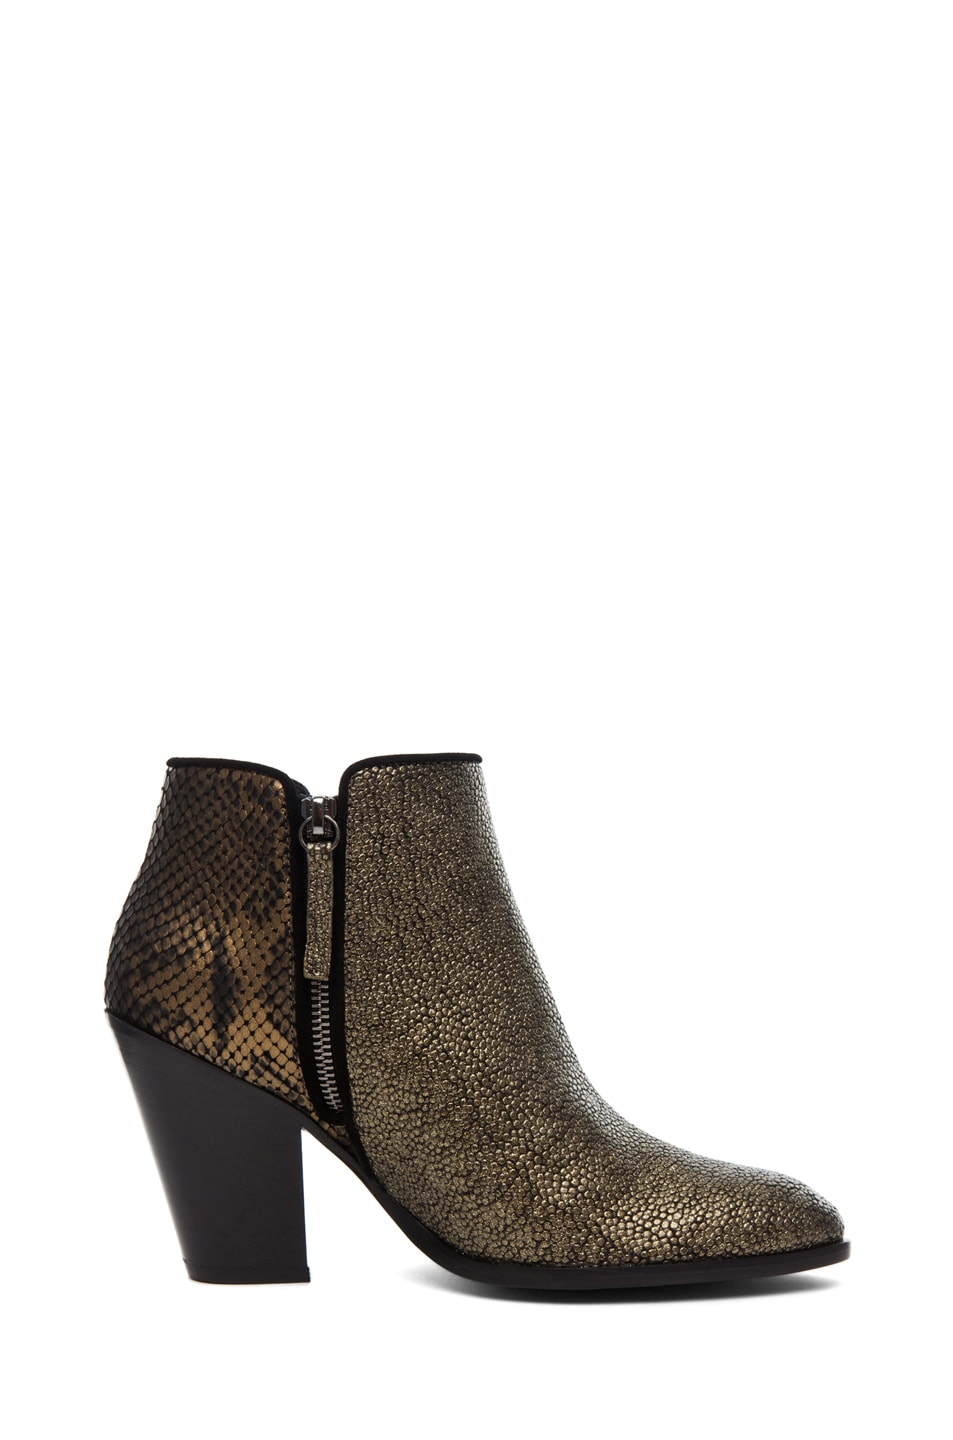 Image 5 of Giuseppe Zanotti Mixed Print Bootie in Bronze